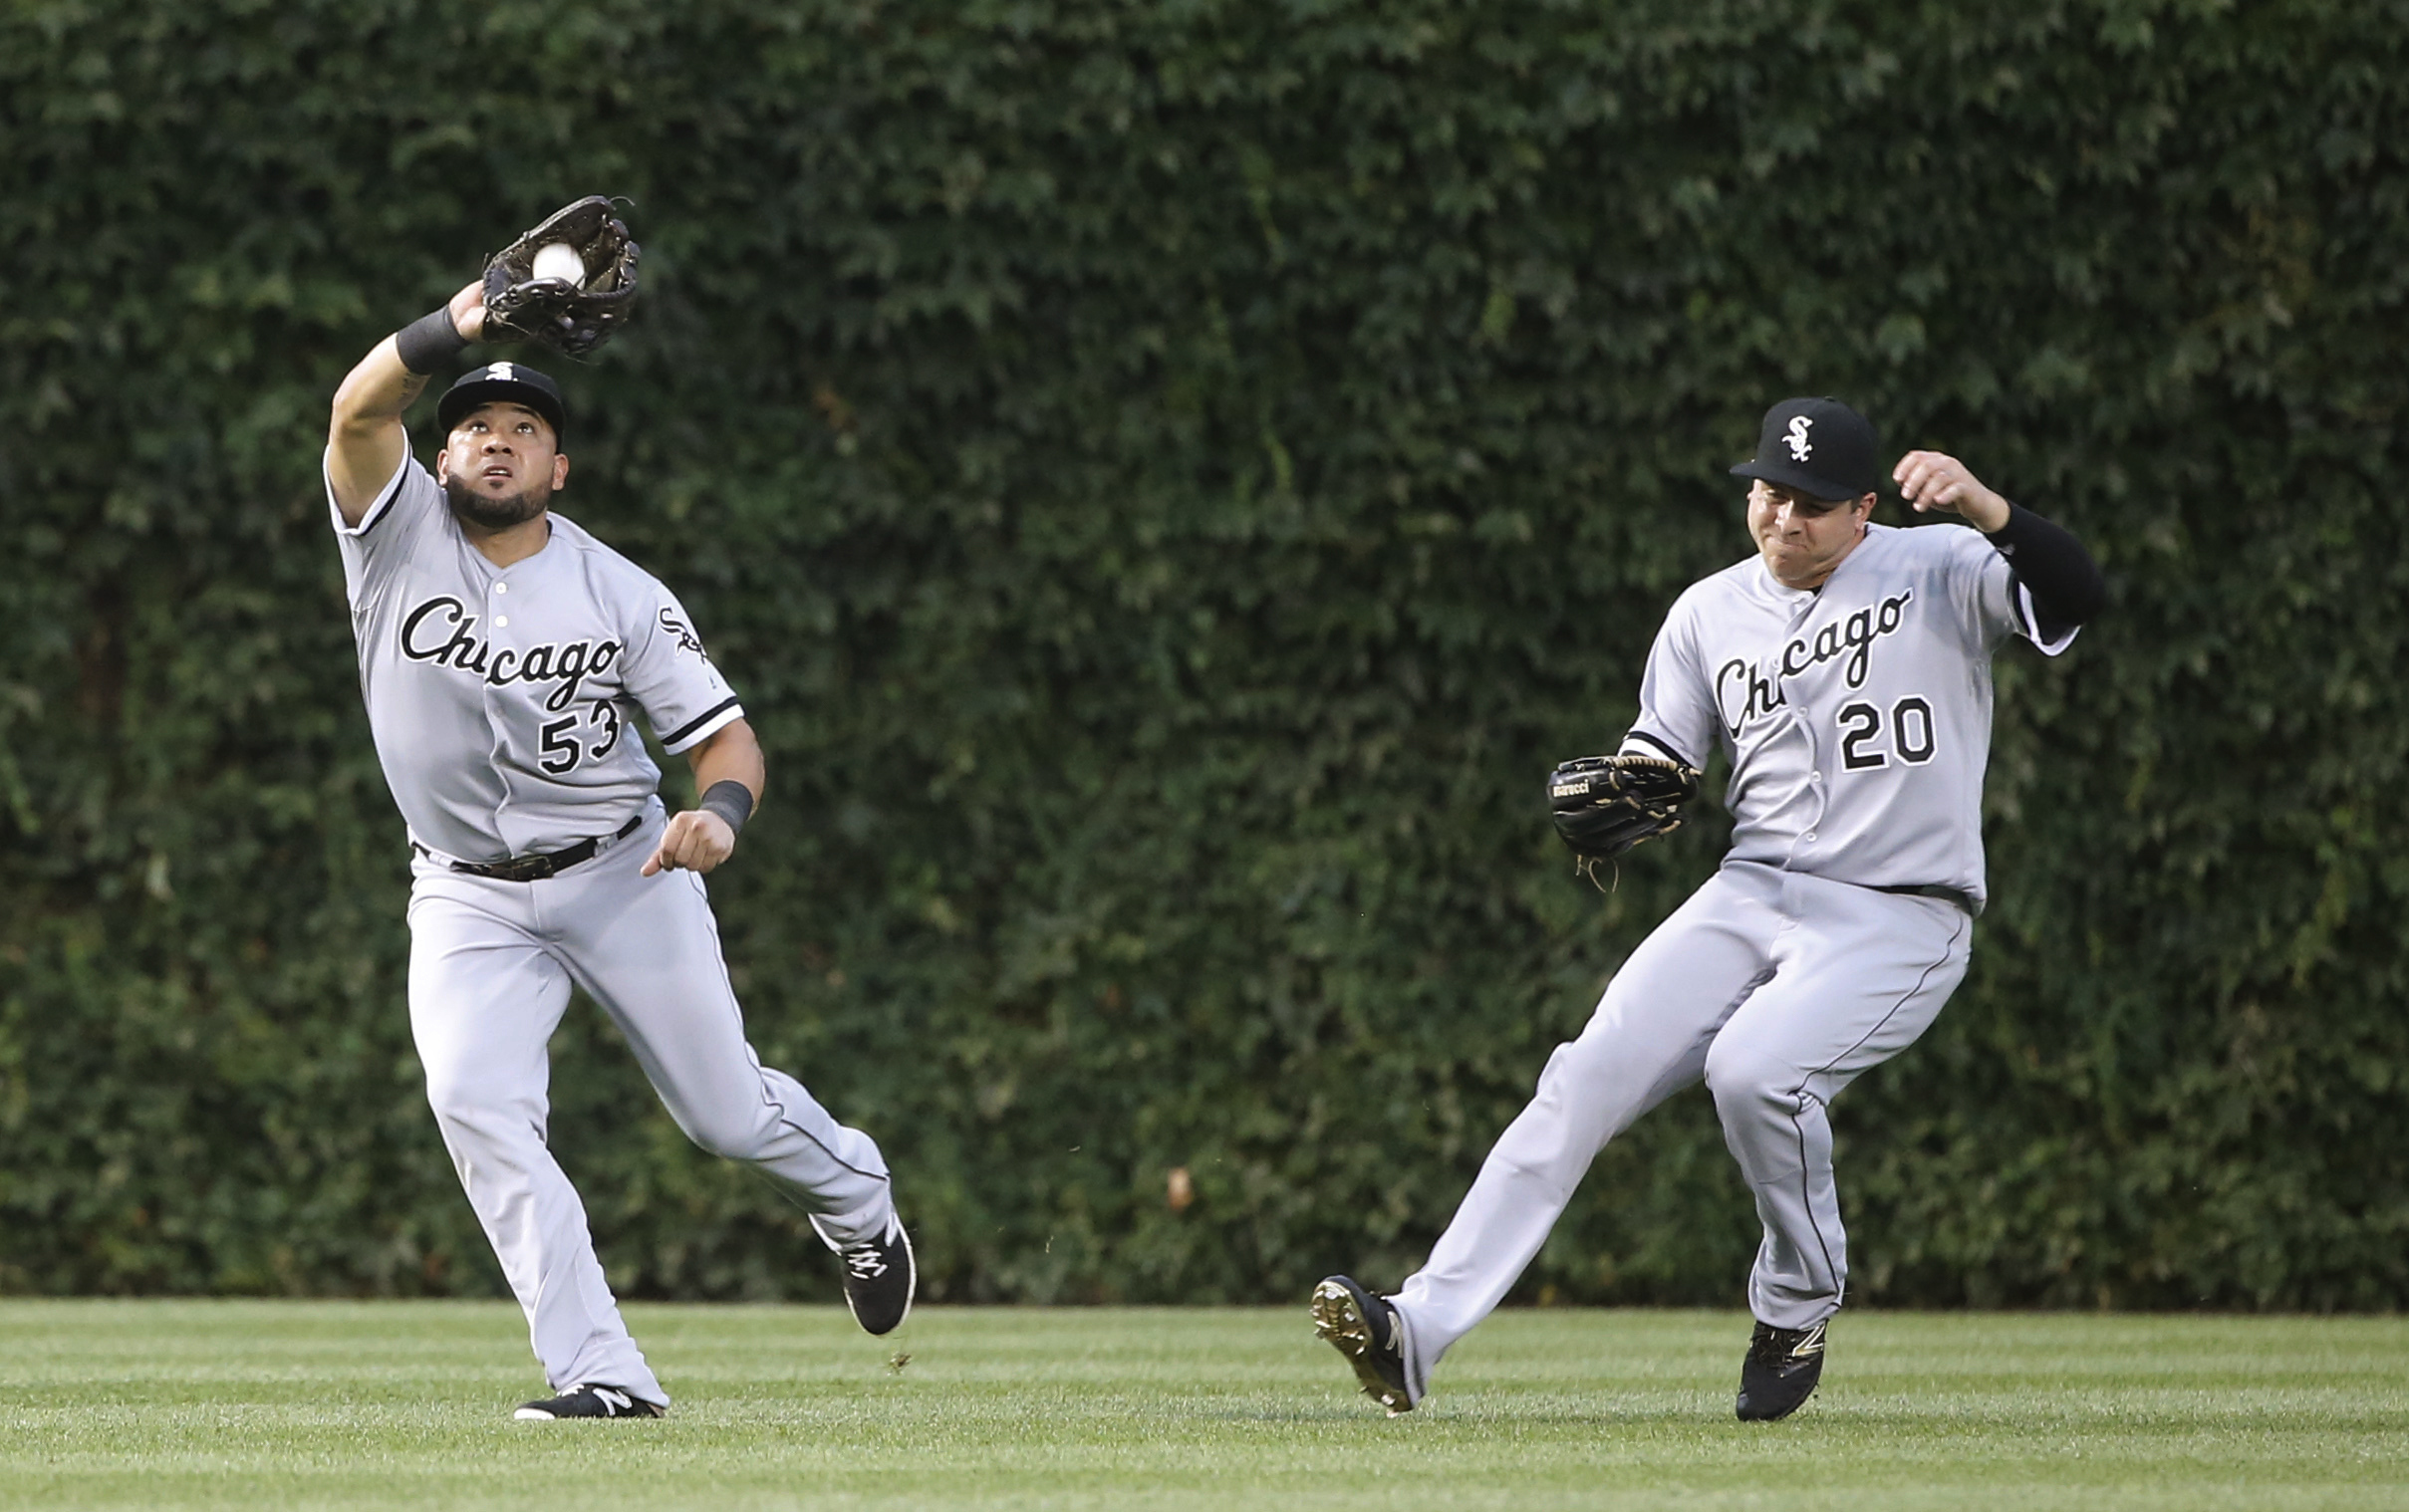 Chicago White Sox left fielder Melky Cabrera (53) catches a fly ball from Chicago Cubs' Anthony Rizzo as center fielder J.B. Shuck avoids a collision during the third inning of a baseball game Thursday, July 28, 2016, in Chicago. (AP Photo/Charles Rex Arb